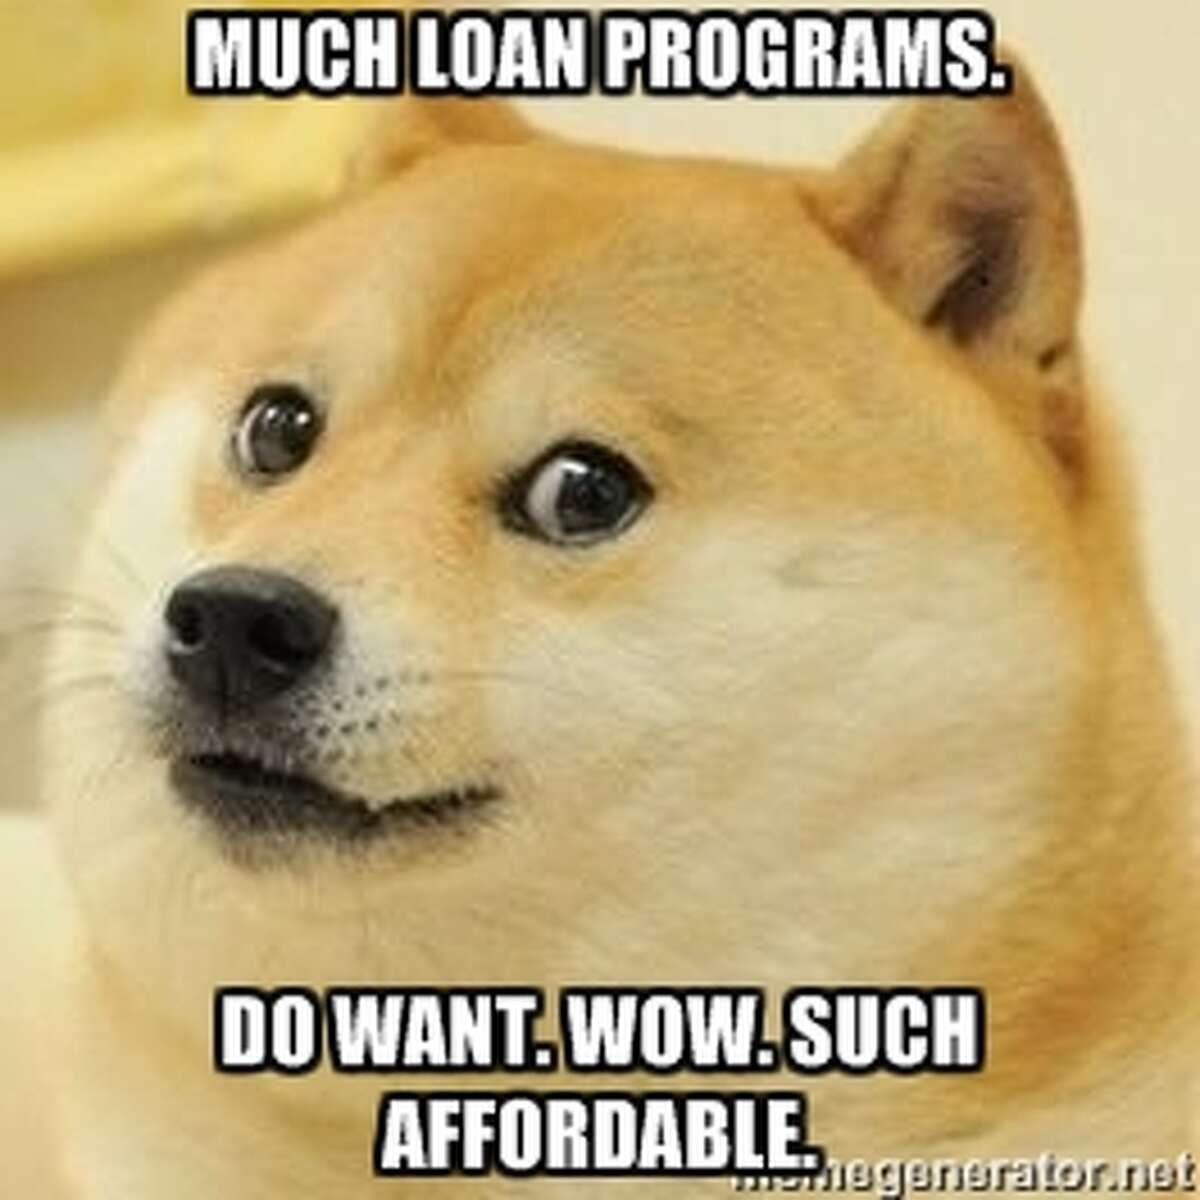 Step 3: See if a loan program is right for you. Research government loan programs like VA, FHA, and USDA loans. Source: Market Leader